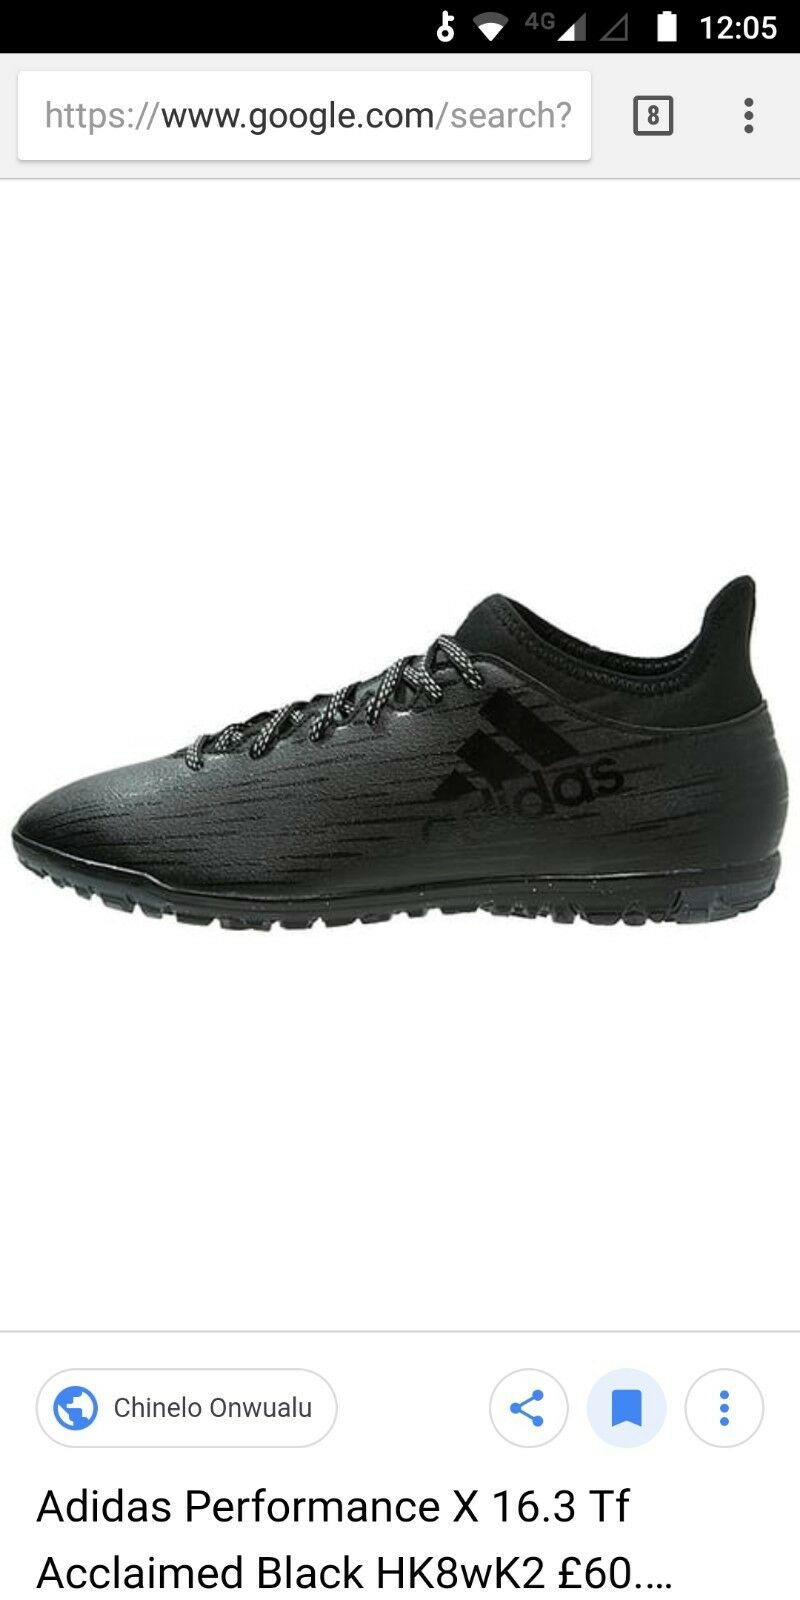 Adidas X 16.3 TF size 7 new black trainers